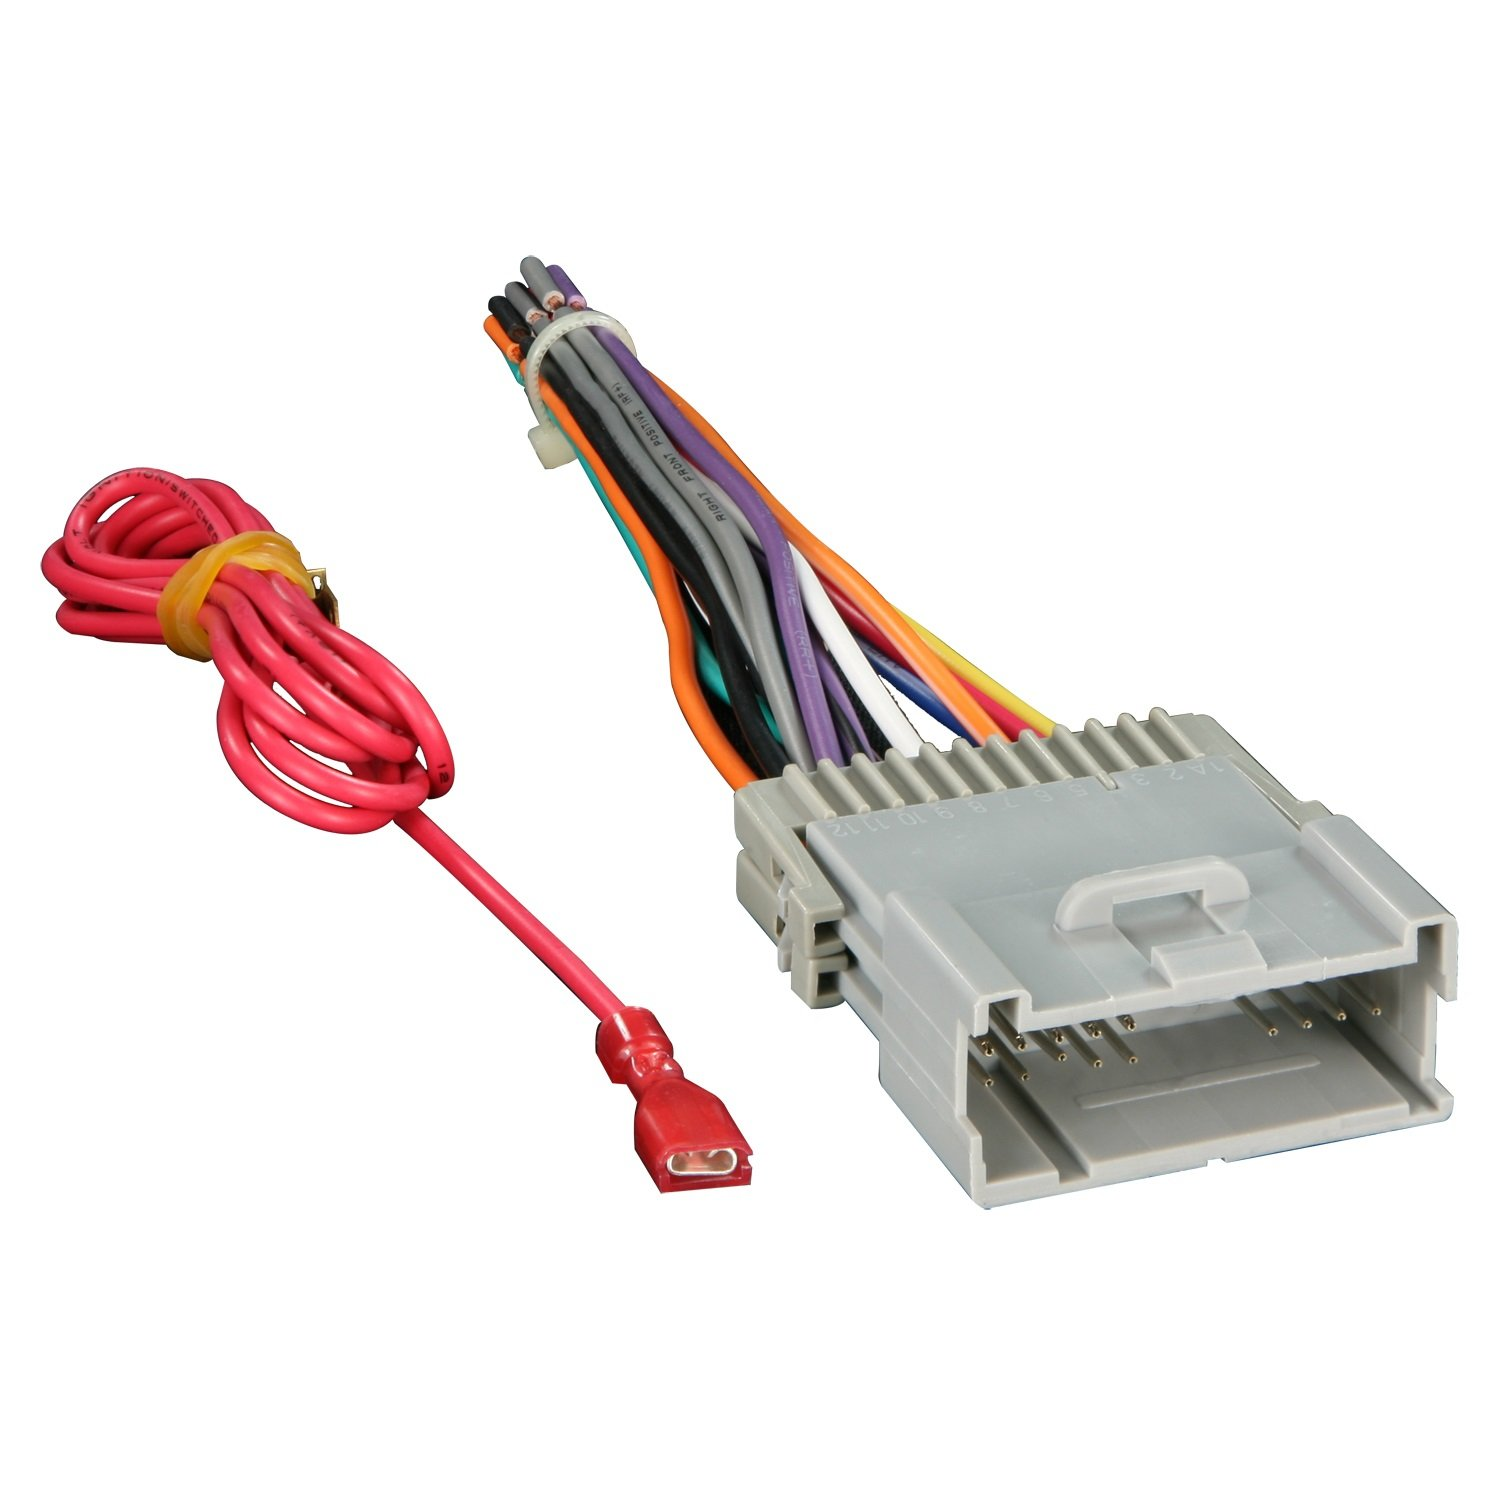 61eewxp9orL._SL1500_ amazon com metra 70 2003 radio wiring harness for gm 98 08 2005 chevy impala radio wiring harness at gsmx.co